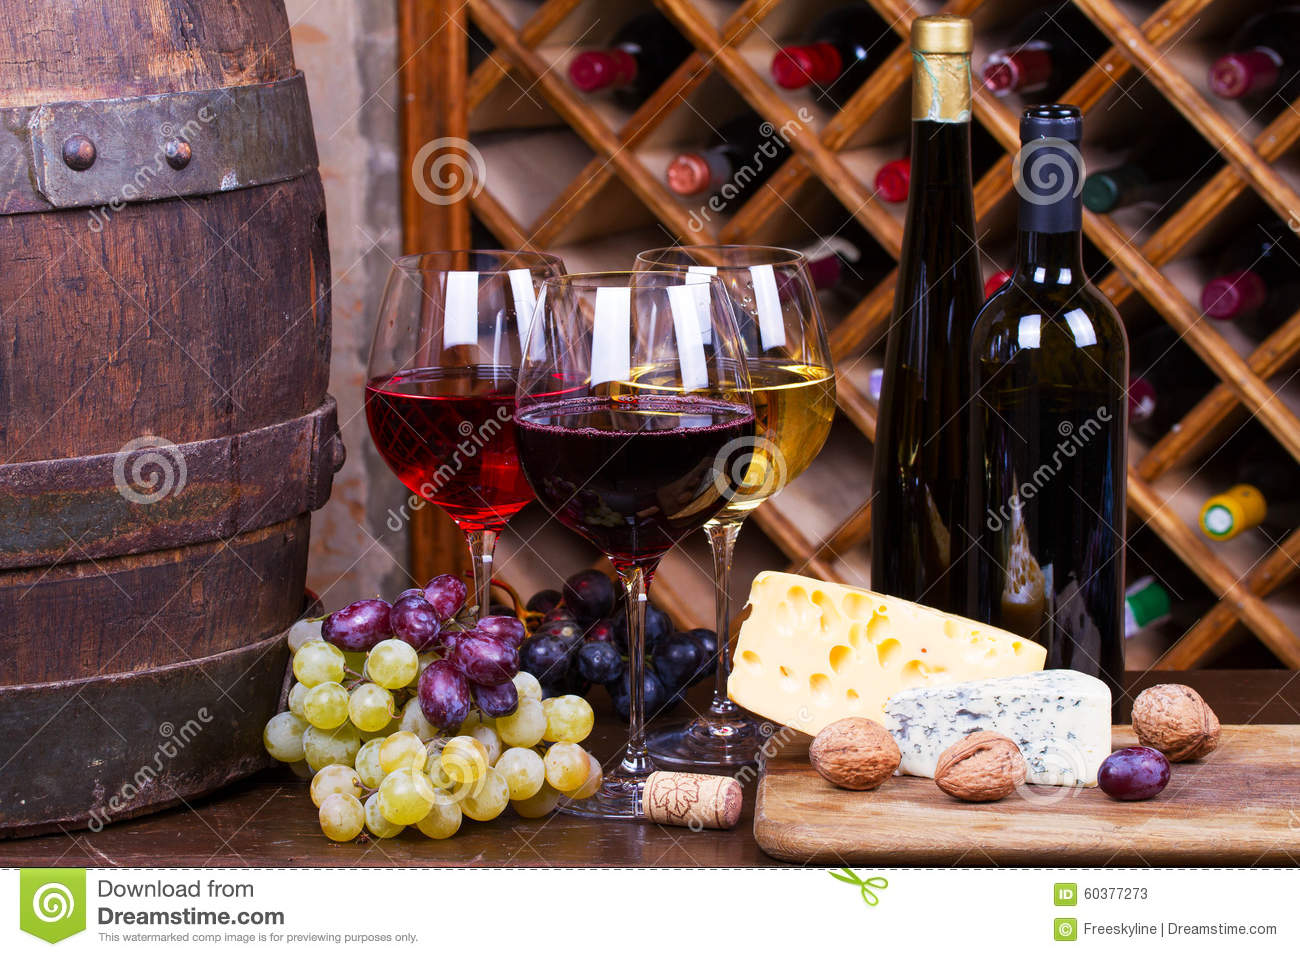 Red, rose and white glasses and bottles of wine. Grape, nuts, cheese and old wooden barrel.